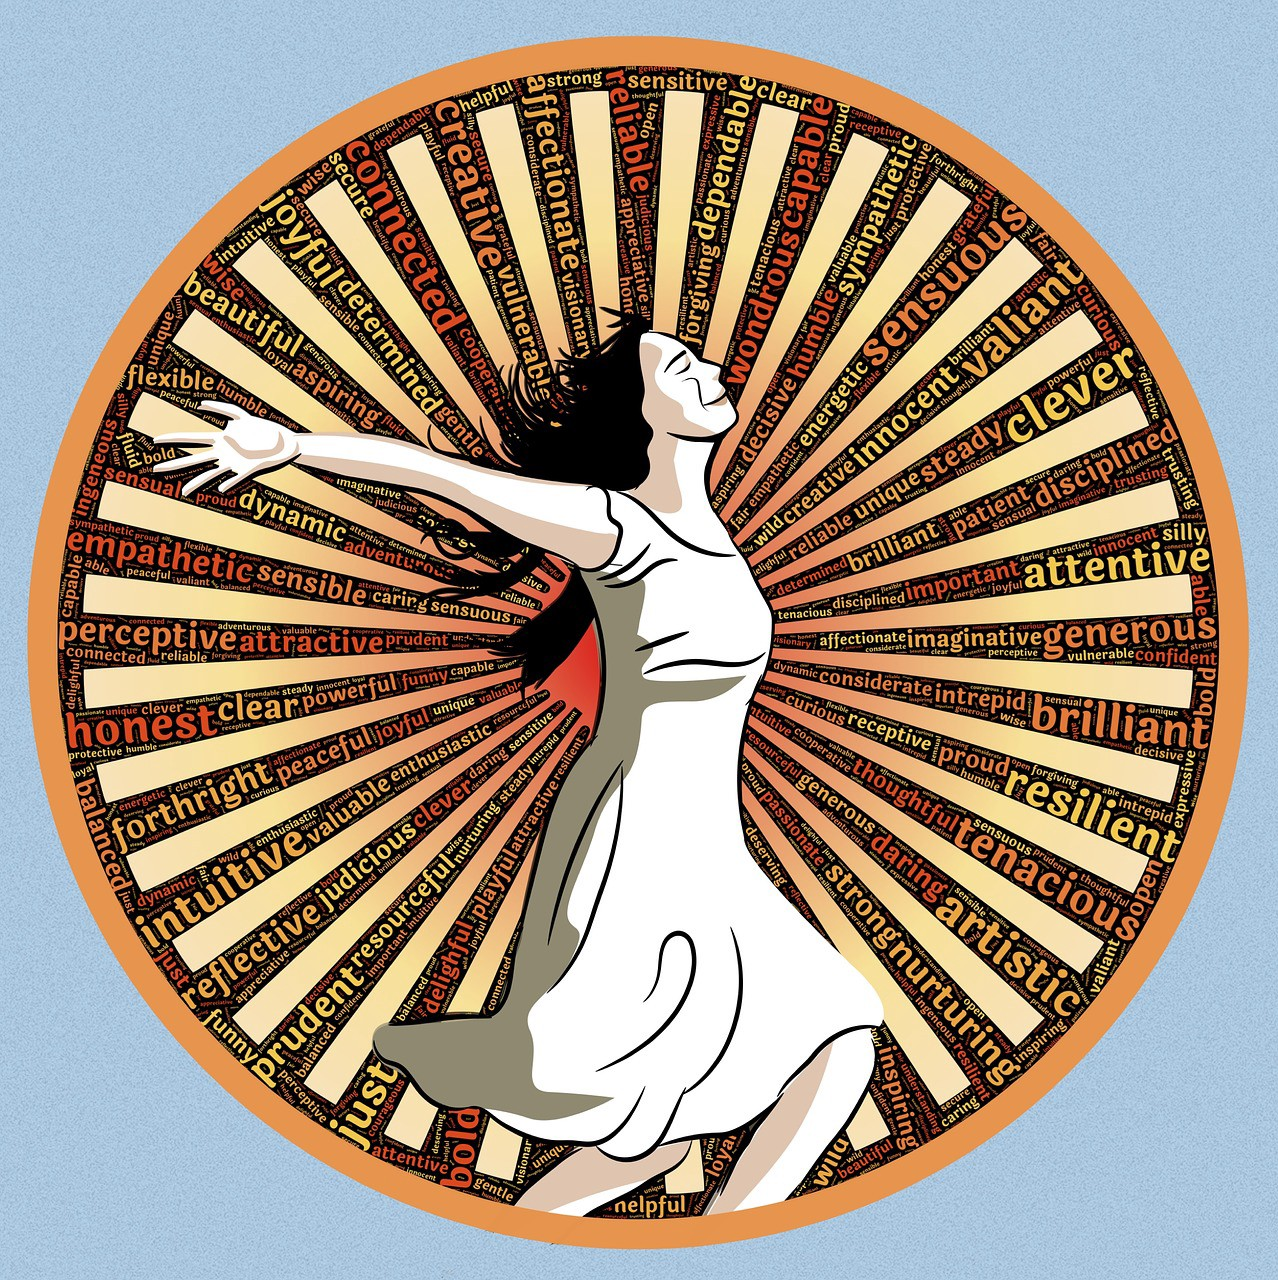 Woman in white sleeveless dress, flowing brown hair, right arm outstretched, She stands in a wheel, between rays around it are qualities e.g. clever, valiant, resilient, artistic, forthright, intuitive, effective, joyful, tenacious, creative, affectionate, tenacious, reliable, dependable.